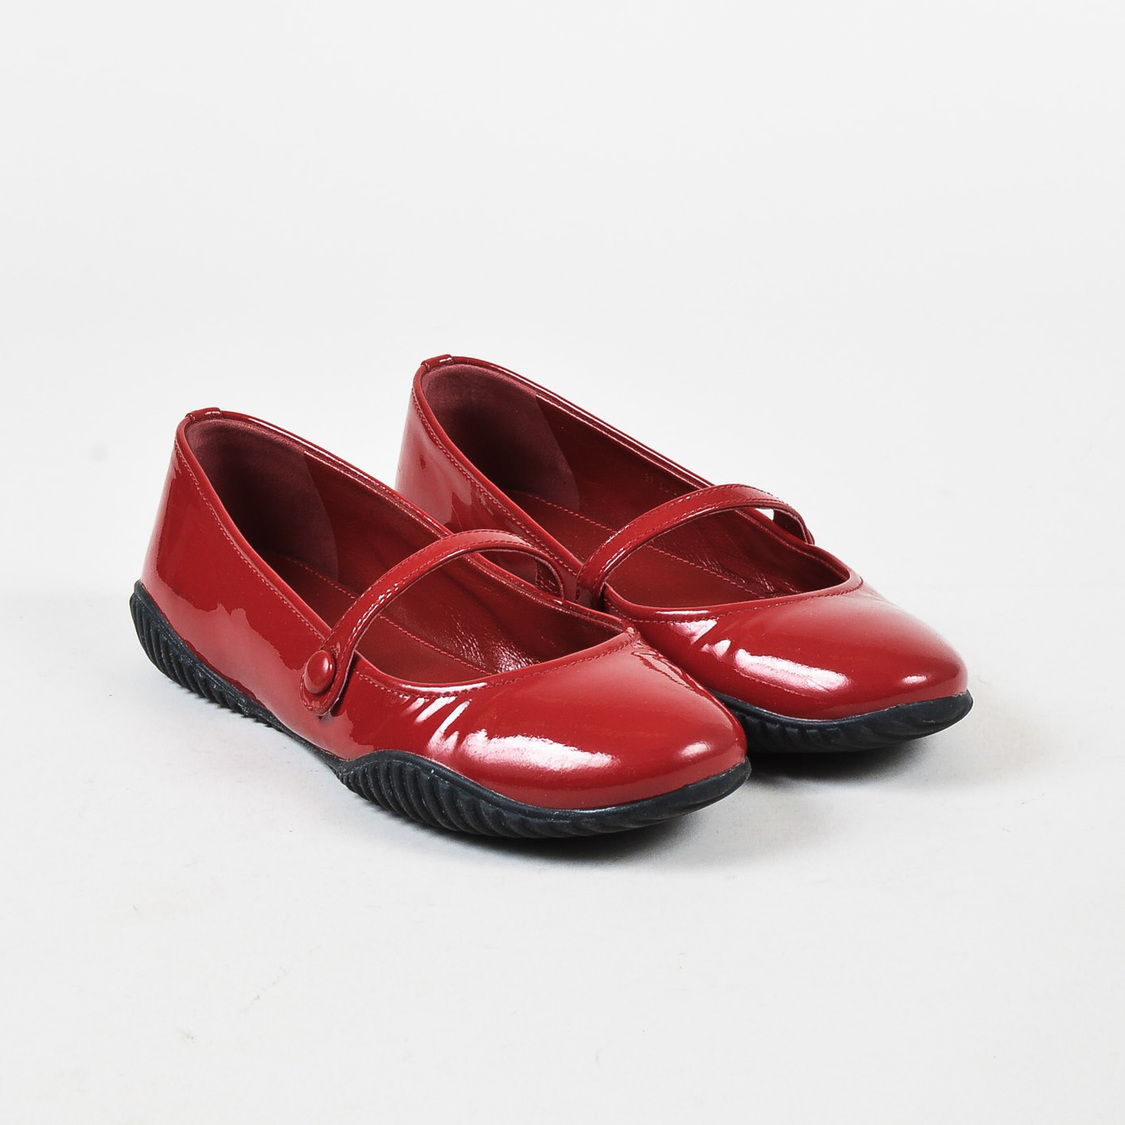 Prada Sport Patent Leather Mary Jane Flats cheap sale latest for sale online best seller cheap price how much cheap online low shipping fee for sale iWMSF